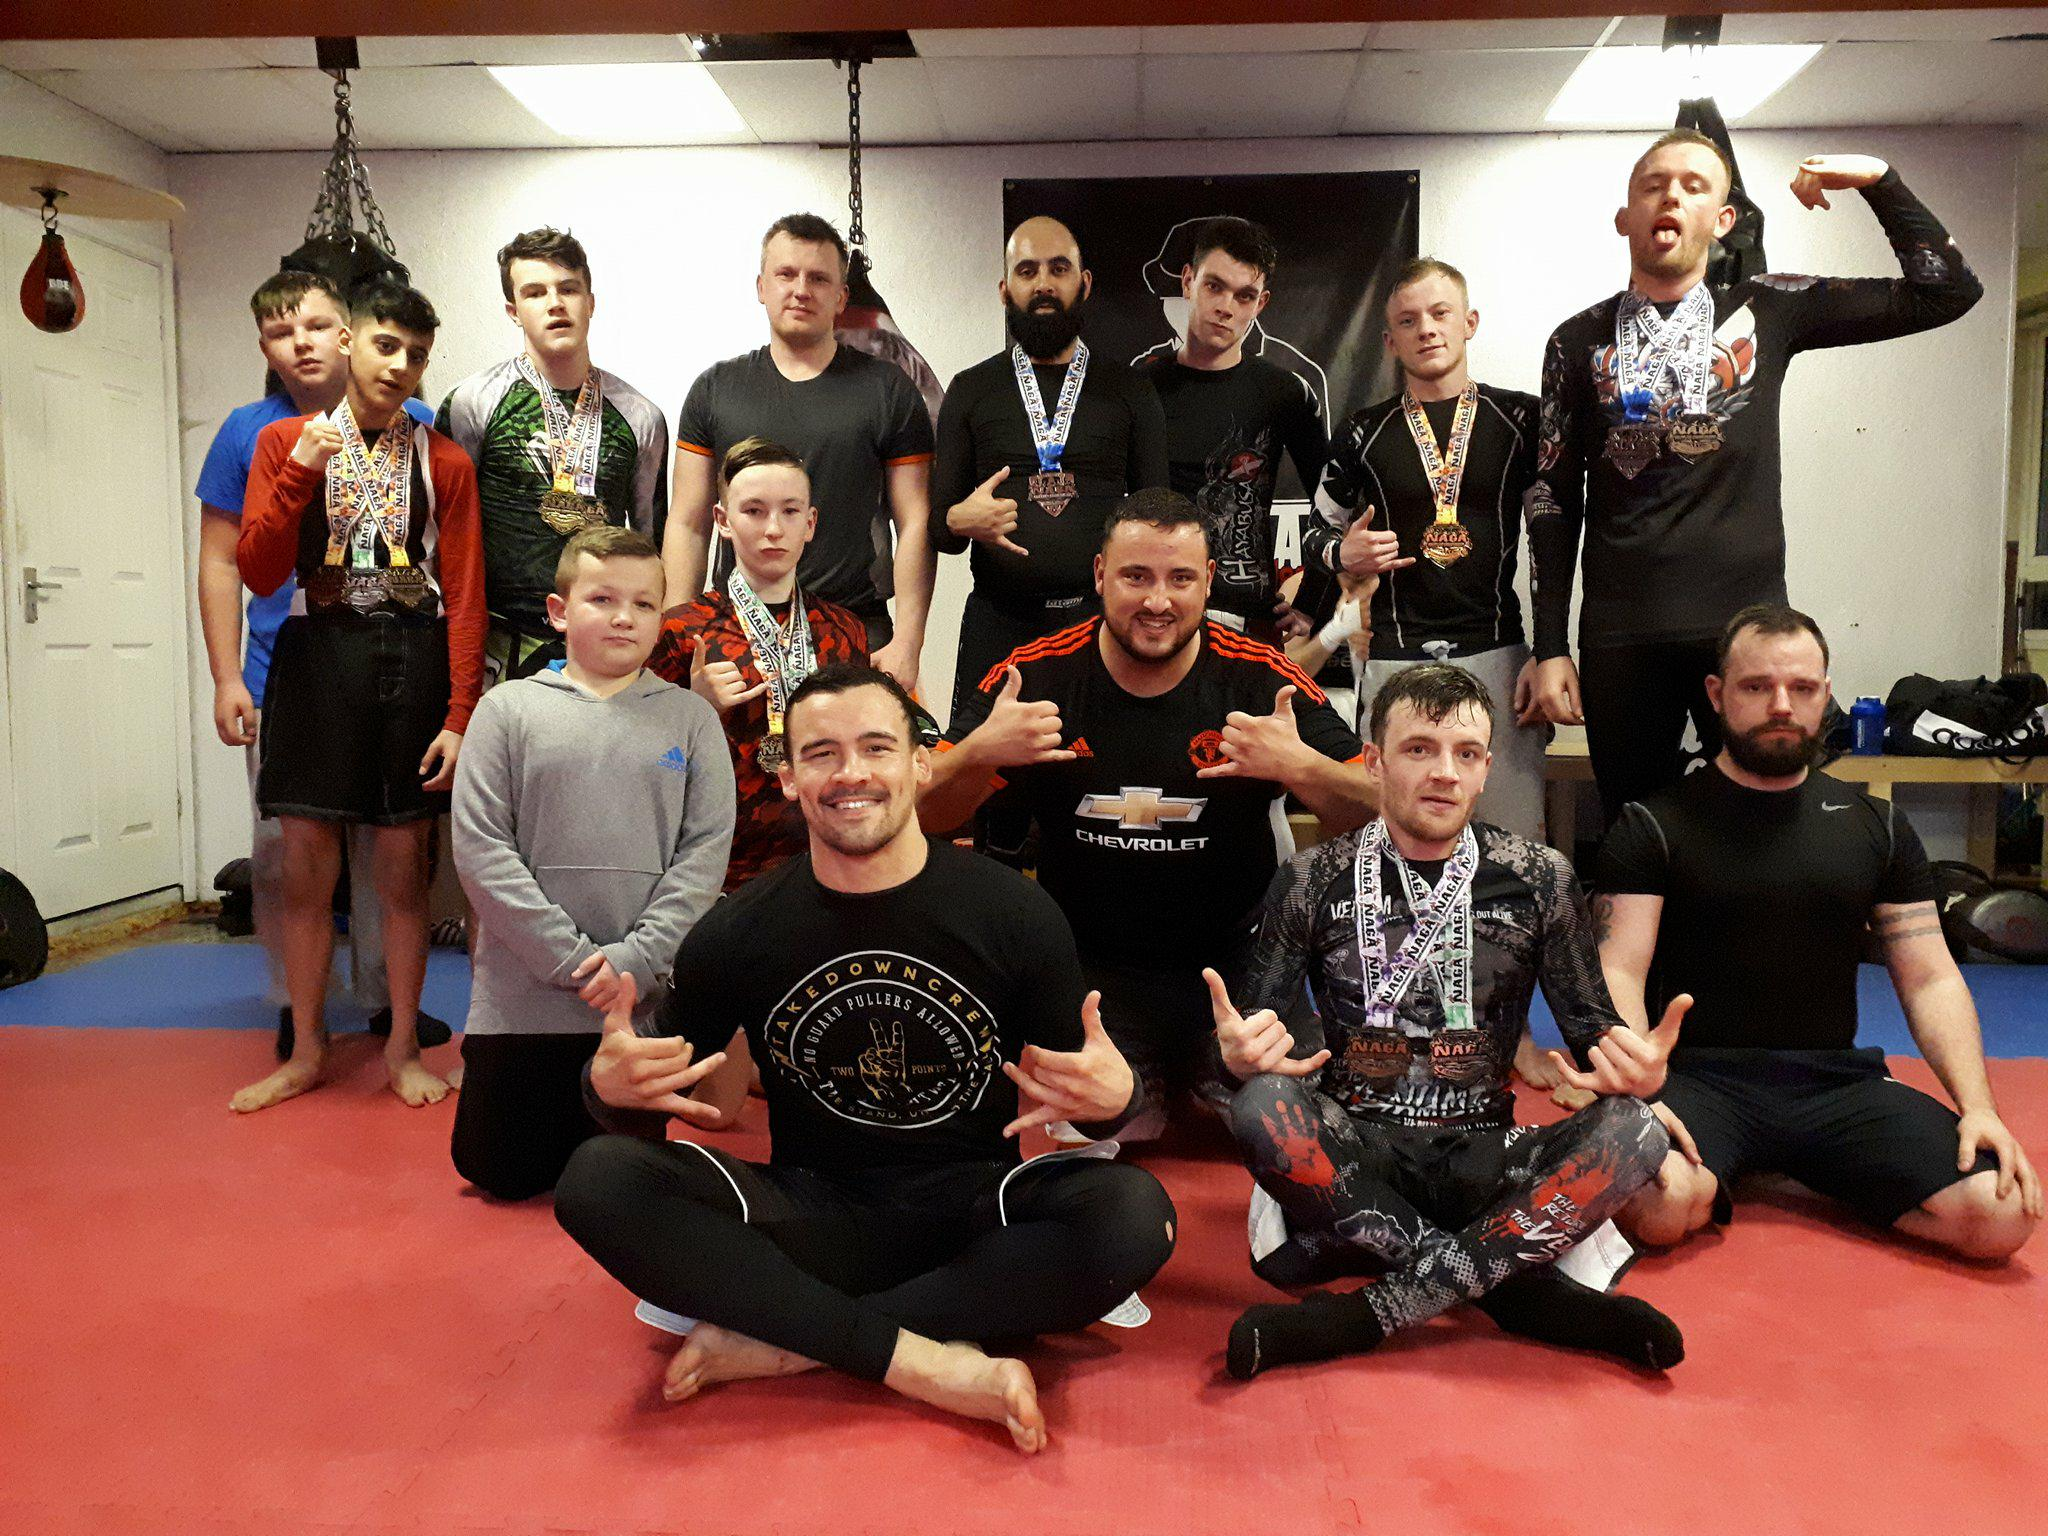 NAGA Birmingham Success! - Great showing for the team at NAGA Birmingham. The Medal count stood at 6 Golds, 8 Silvers, 3 Bronze and a NAGA Championship belt.10/04/2018